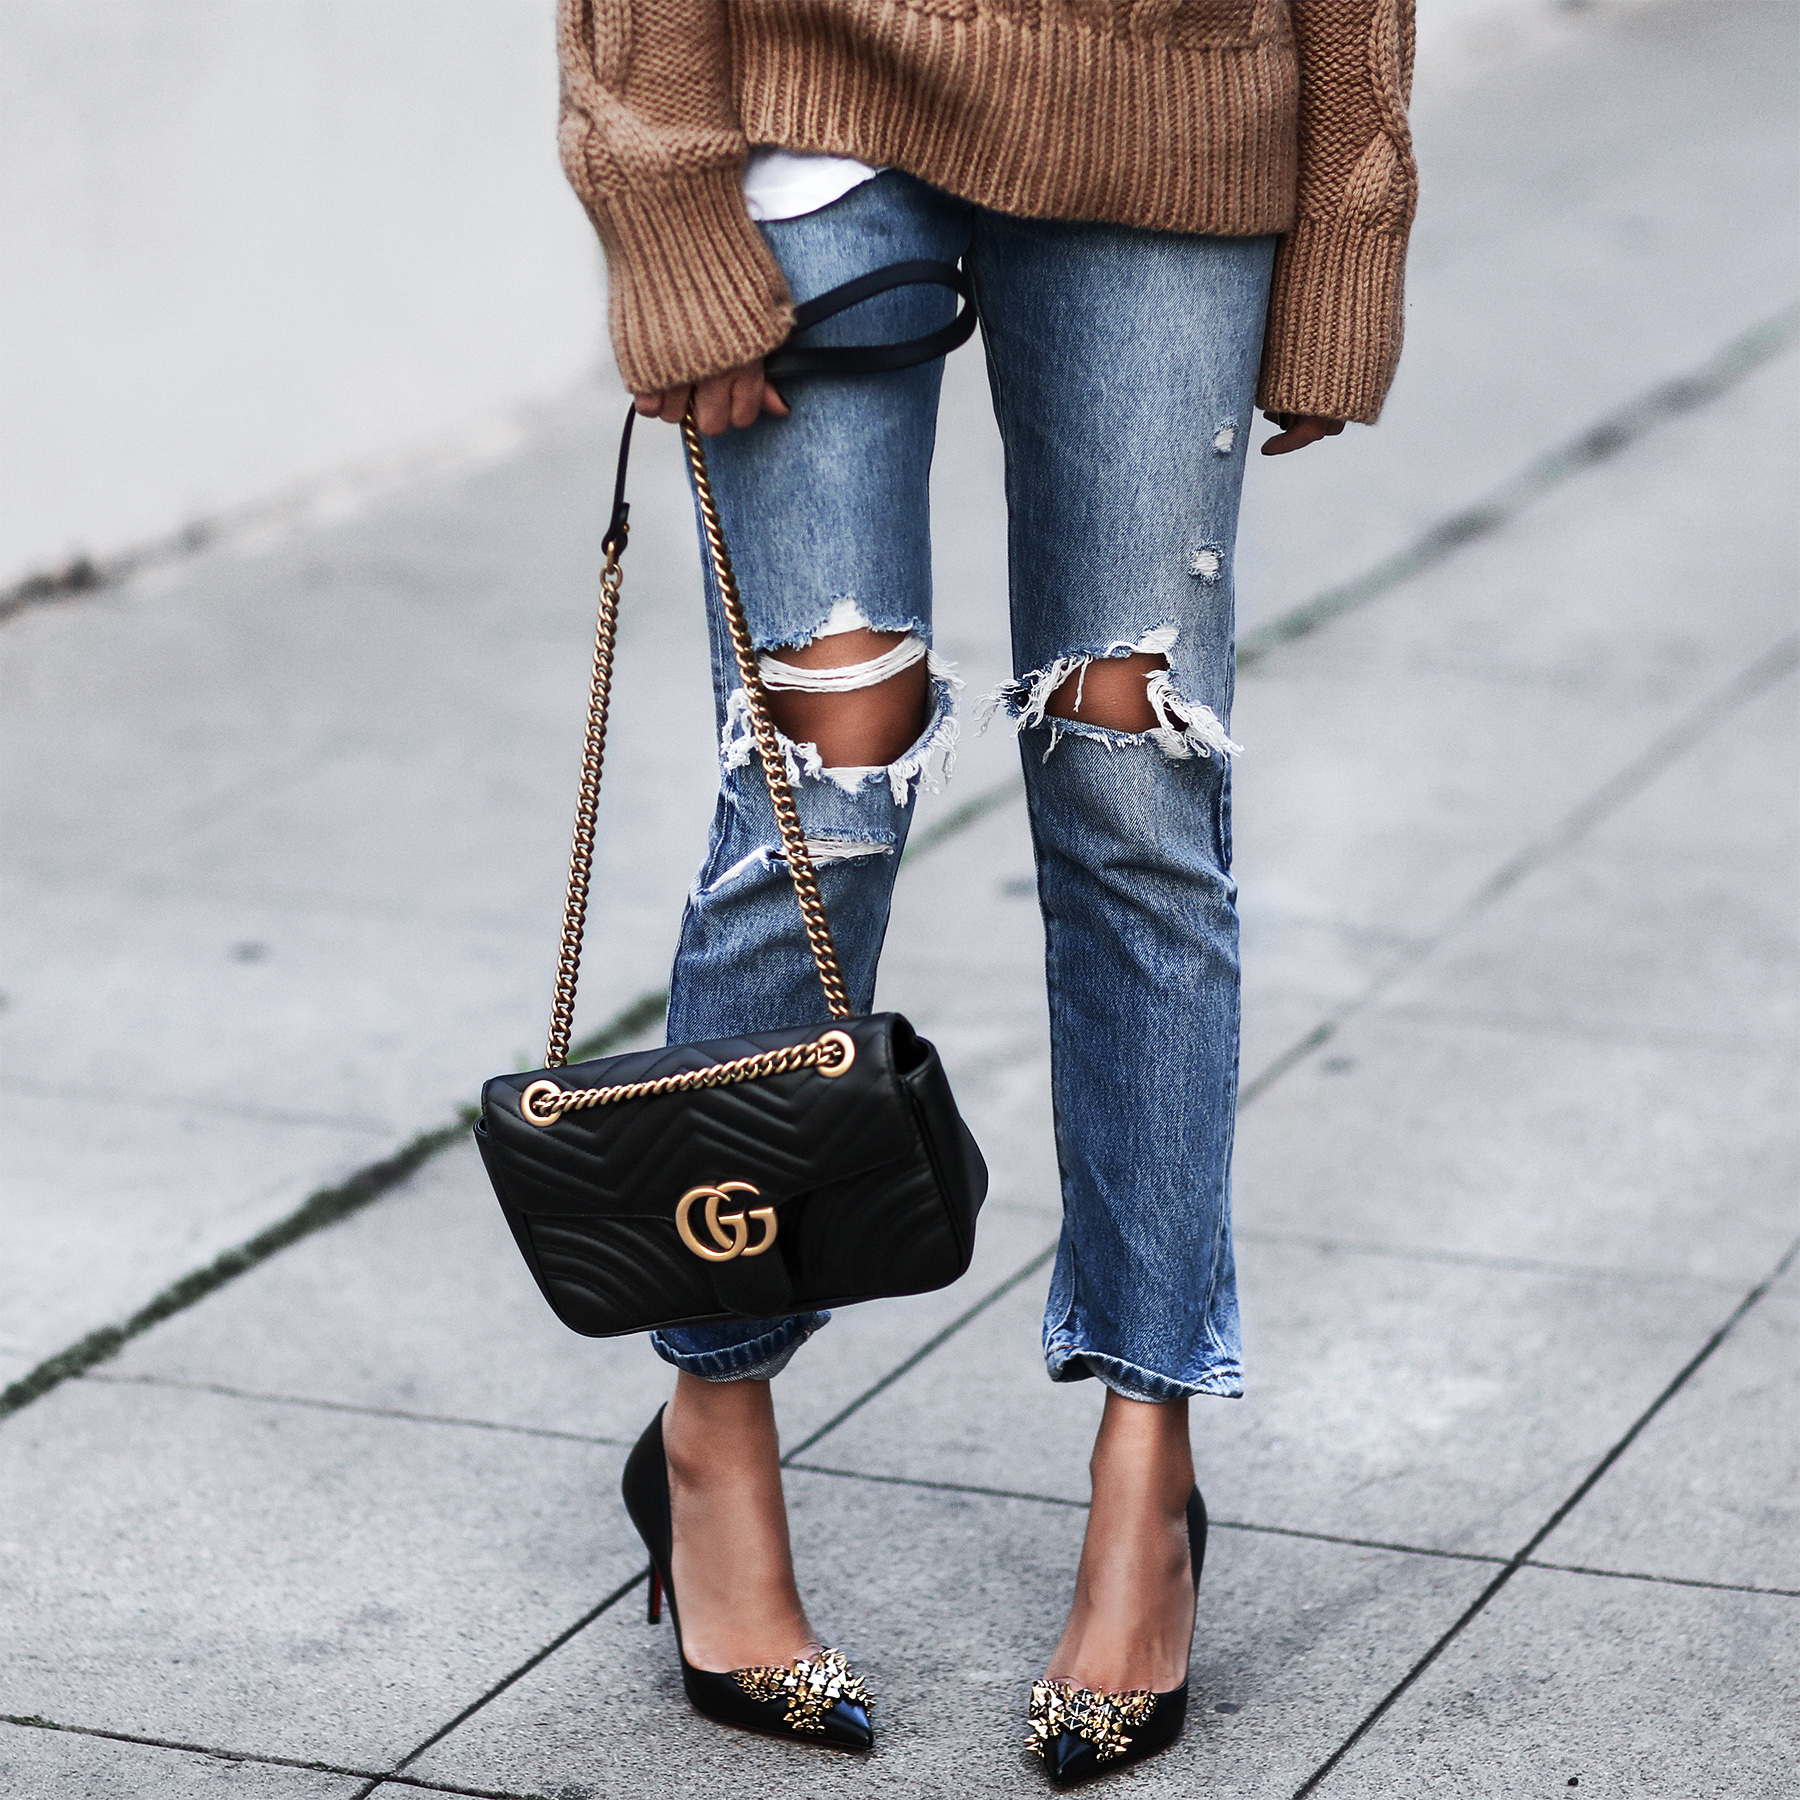 christian louboutin shoes, ripped jeans, cable knit sweater, gucci bag